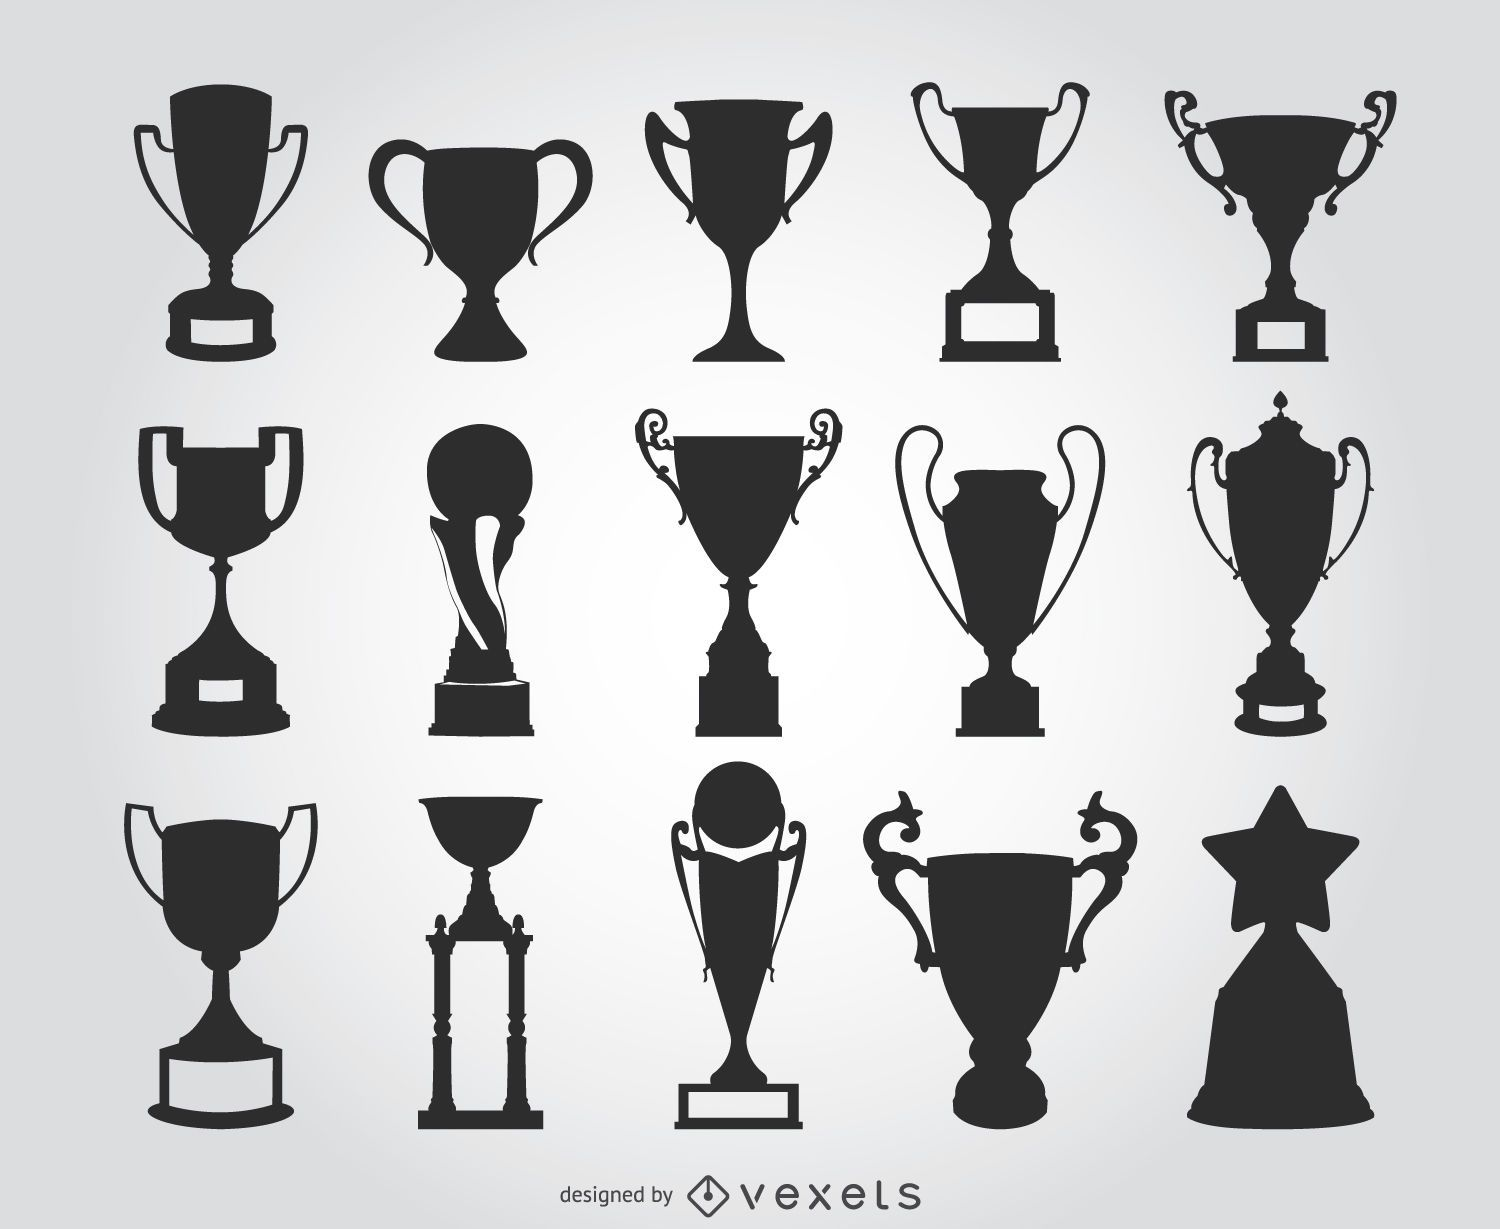 15 Trophy Silhouettes Vector Download